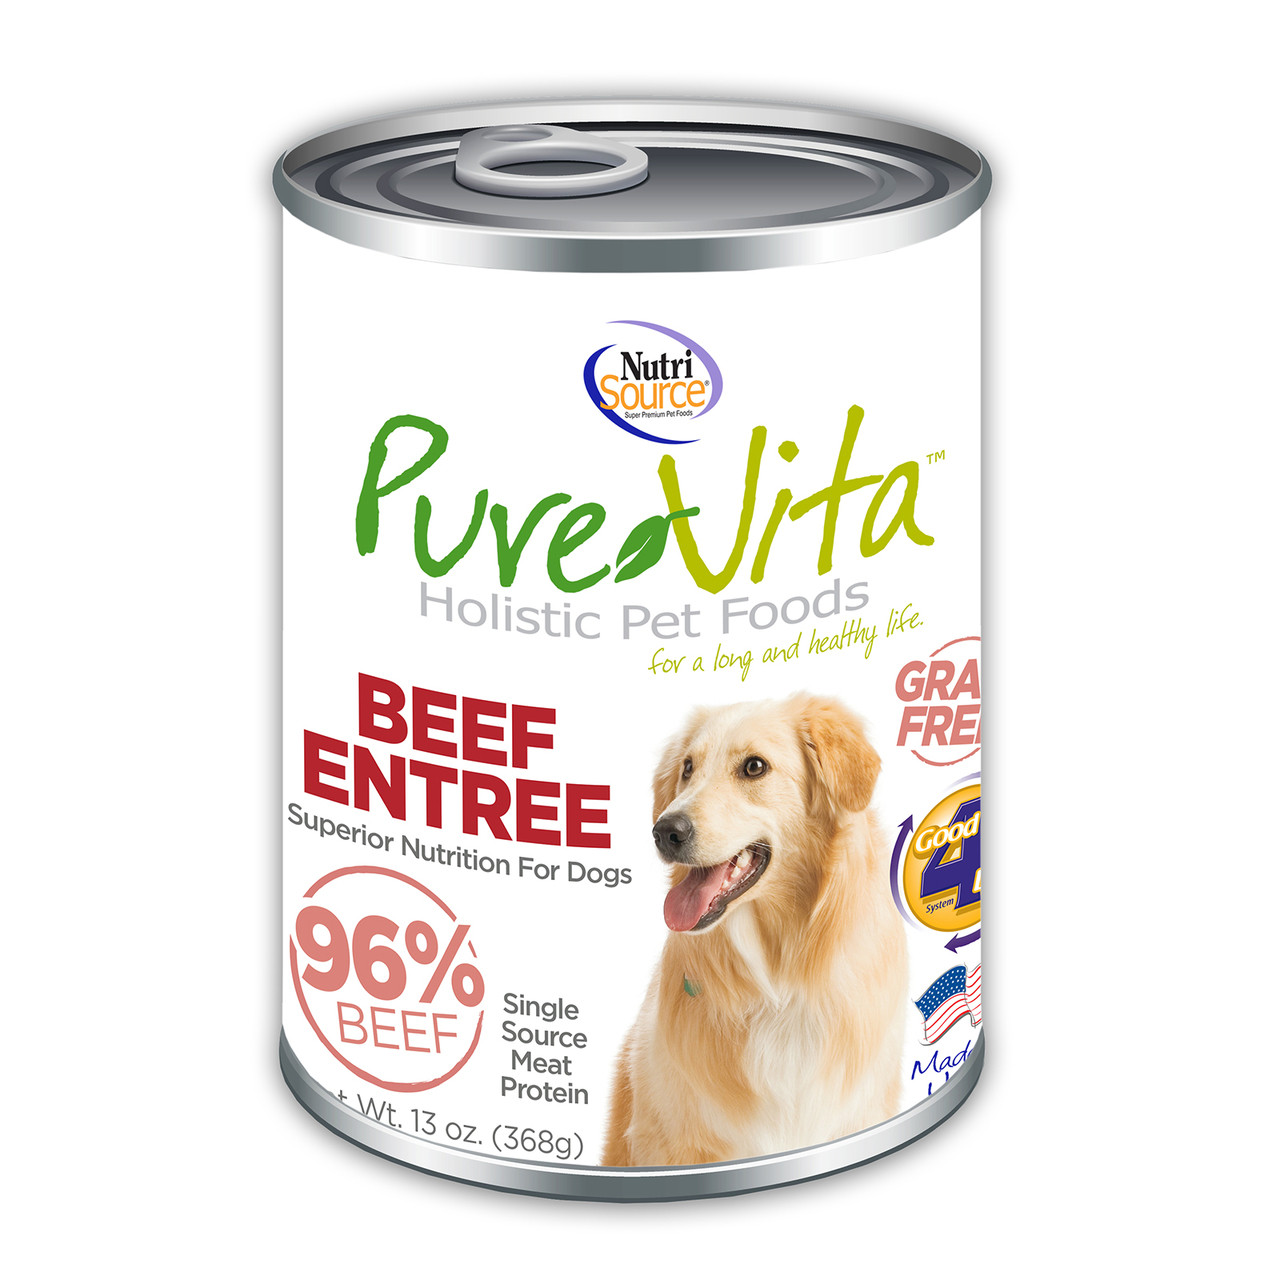 click here to shop PureVita Beef Entree Canned Dog Food